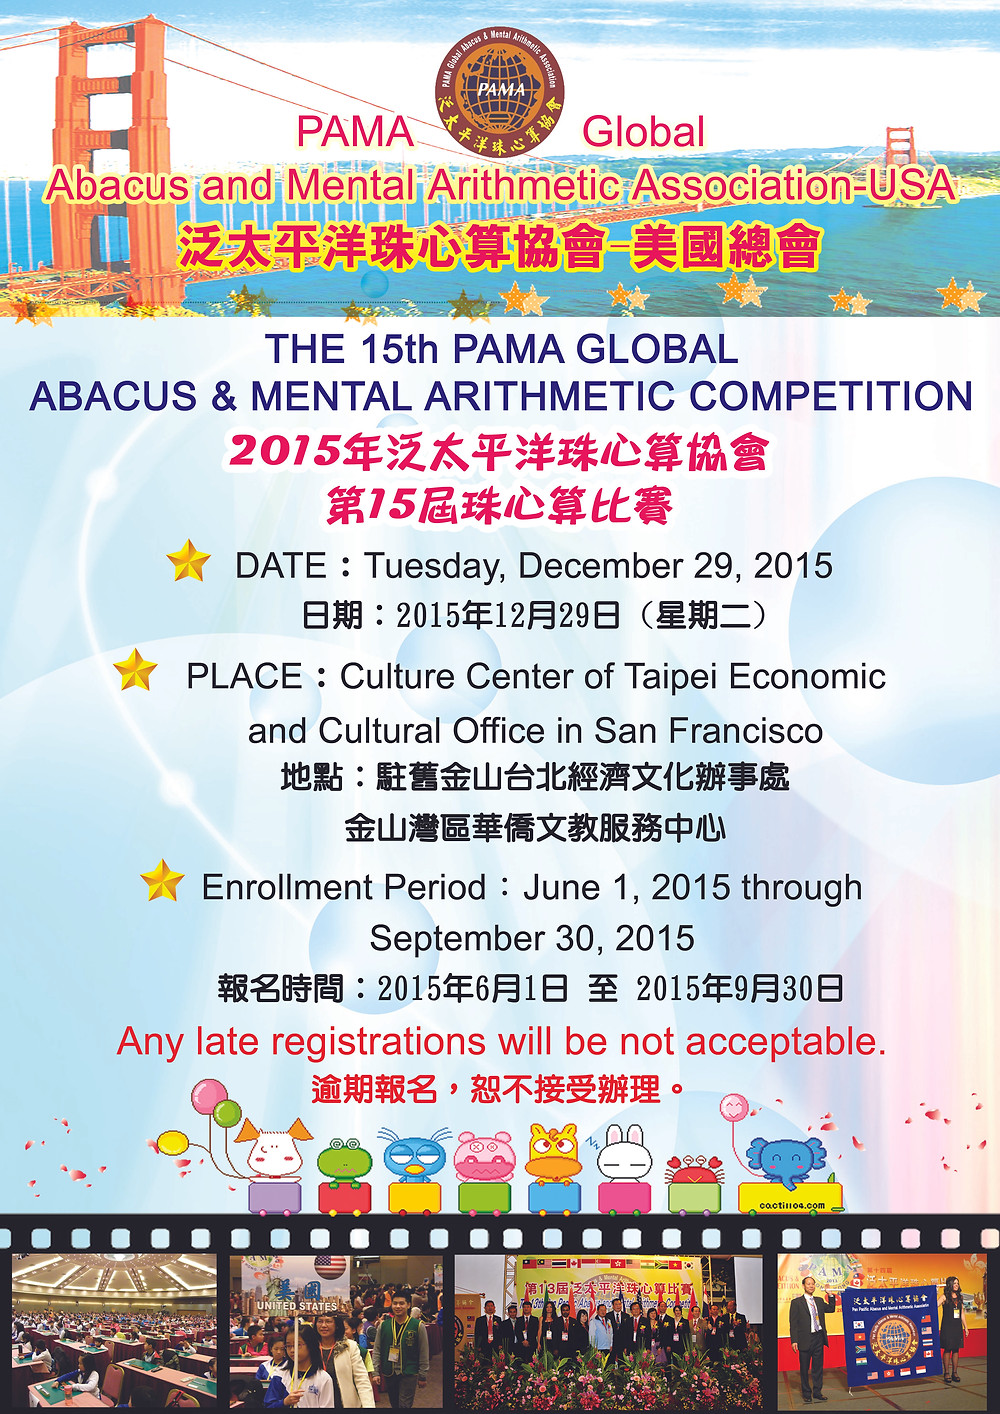 THE 15th PAMA GLOBAL ABACUS & MENTAL ARITHMETIC COMPETITION RULES & REGULATIONS.jpg